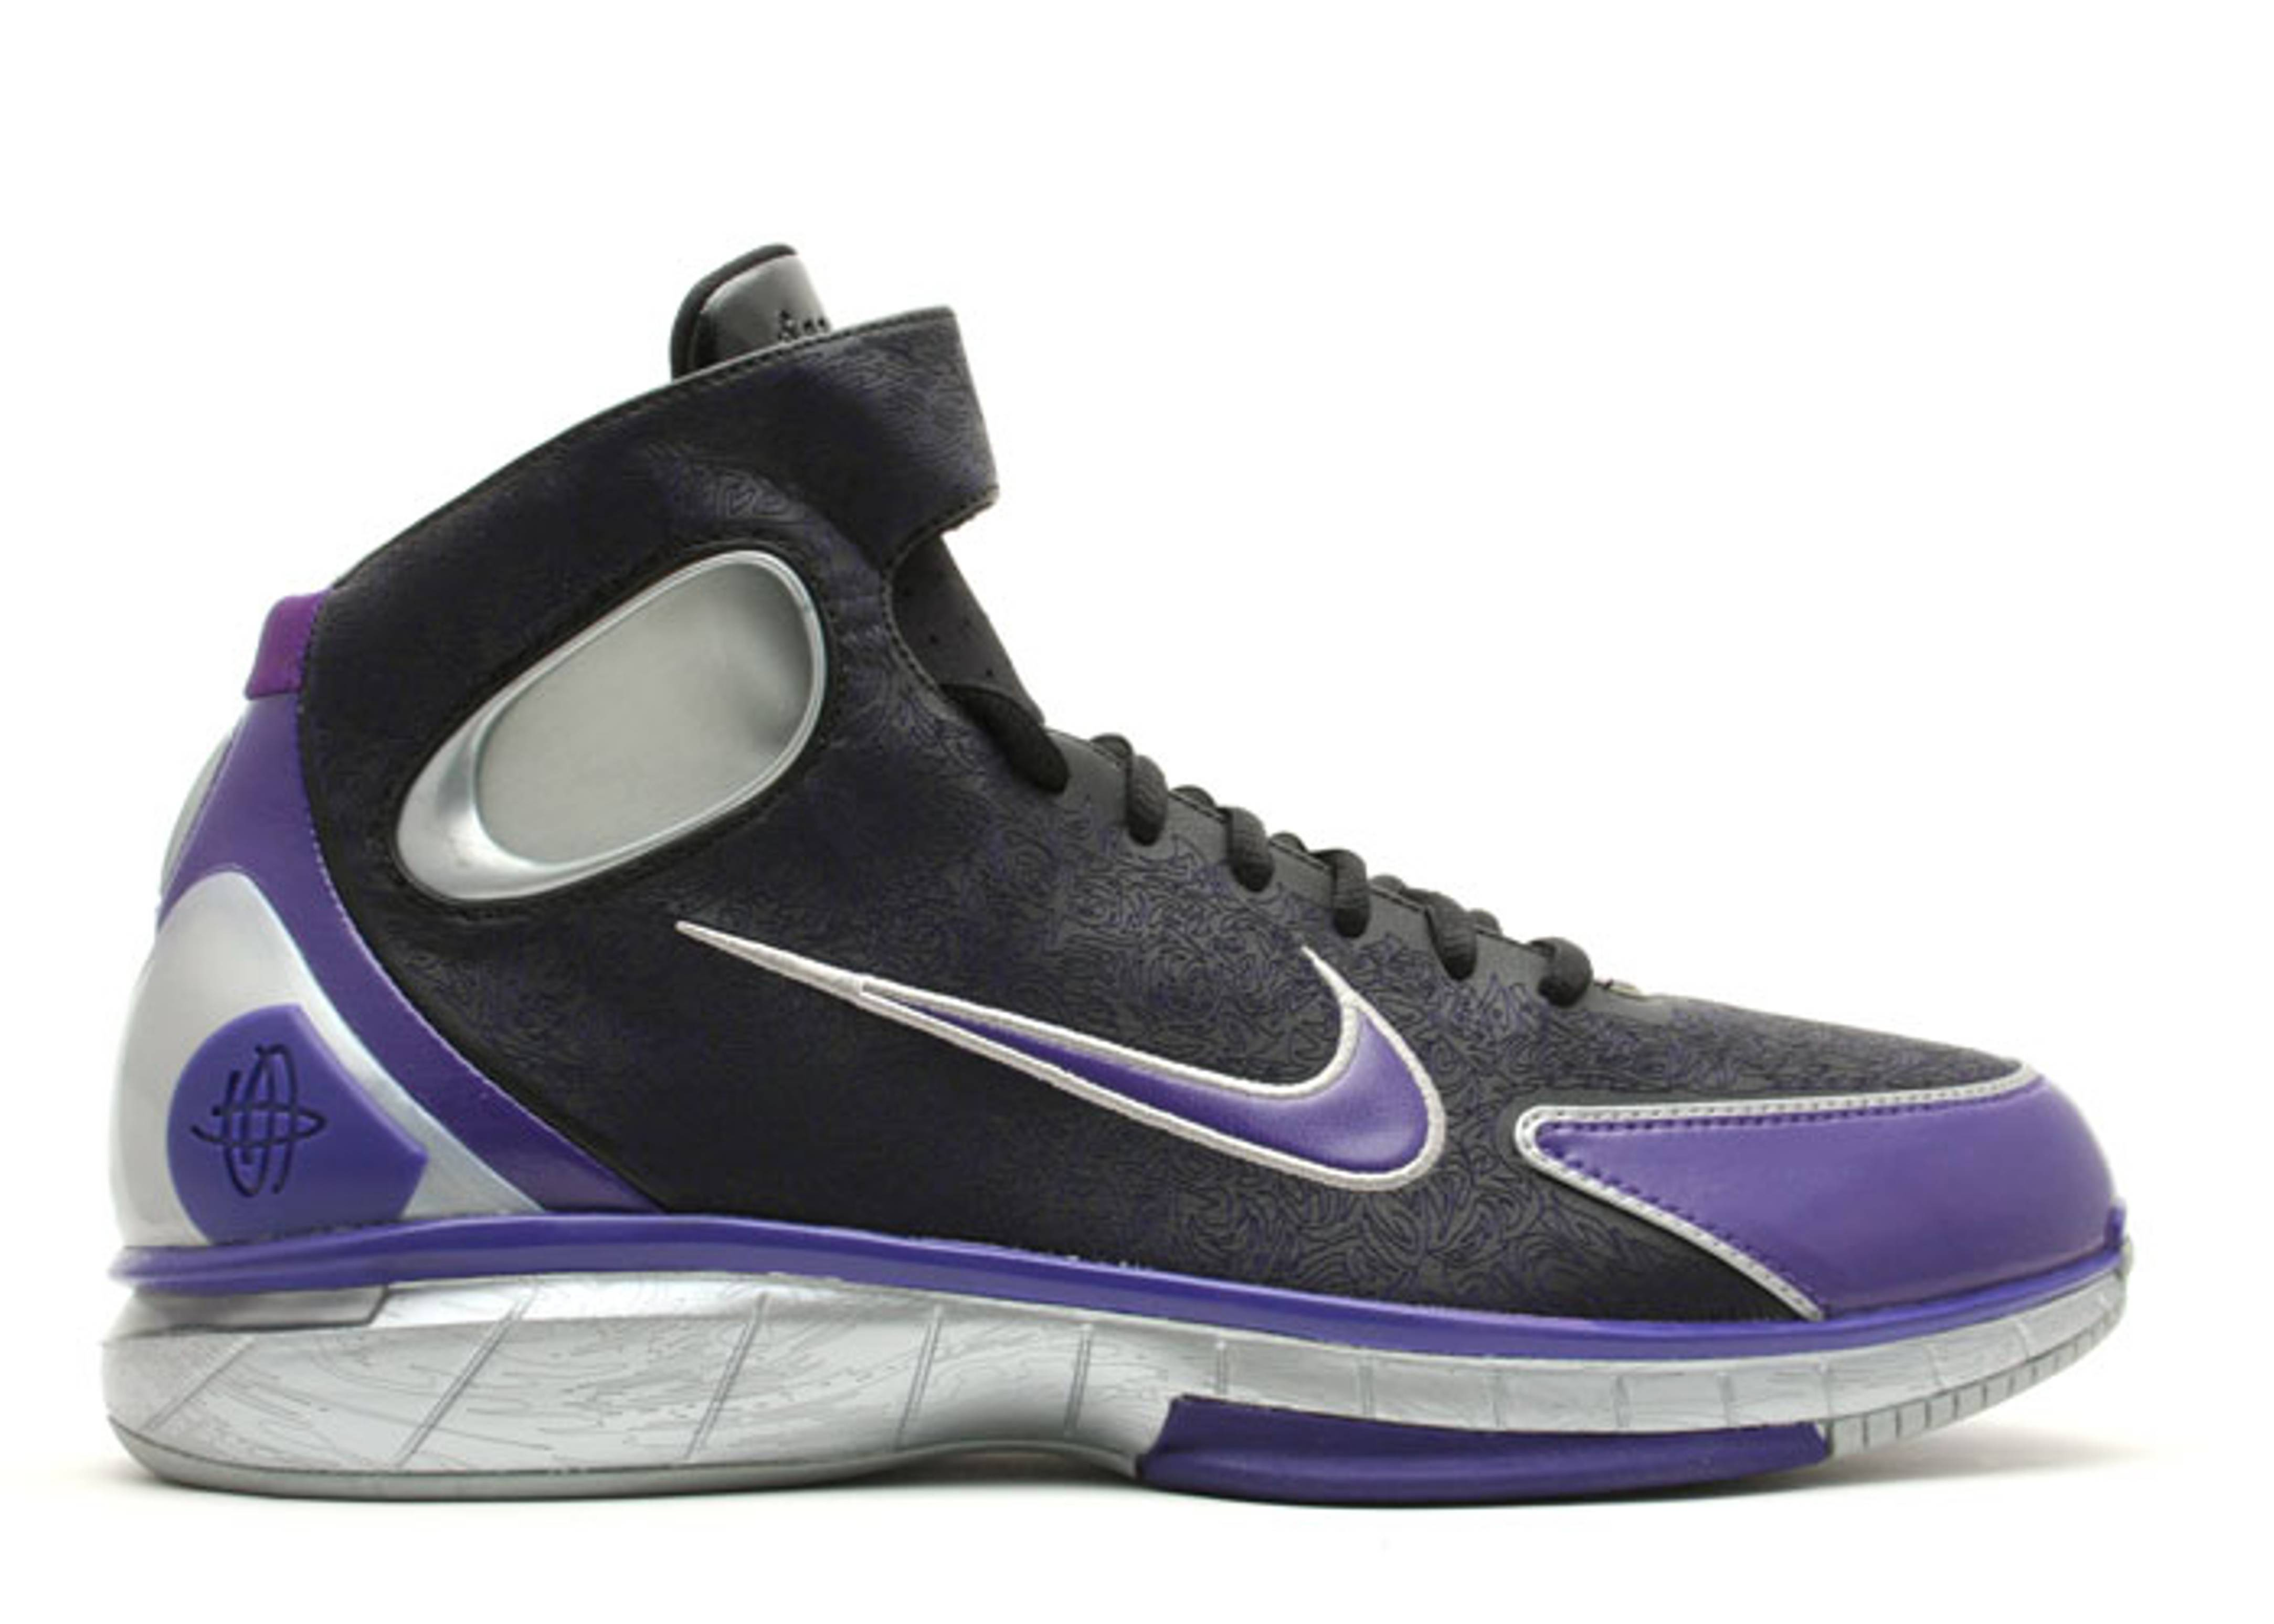 official photos quality products multiple colors air zoom huarache 2k4